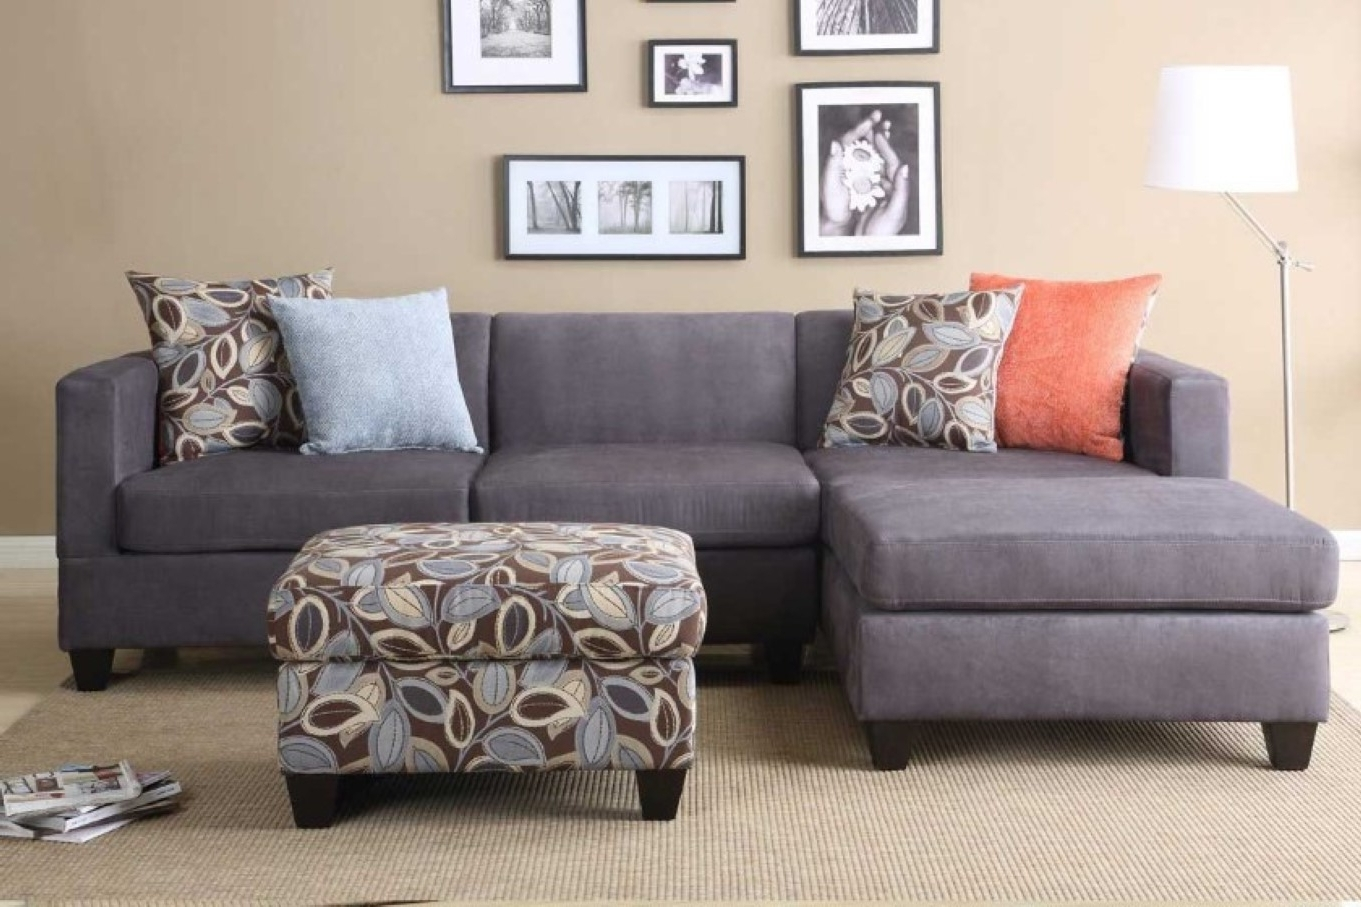 Incredible Microfiber Sleeper Sofa Top Home Design Ideas With Grey For Well Known 3 Piece Sectional Sleeper Sofas (Gallery 6 of 15)